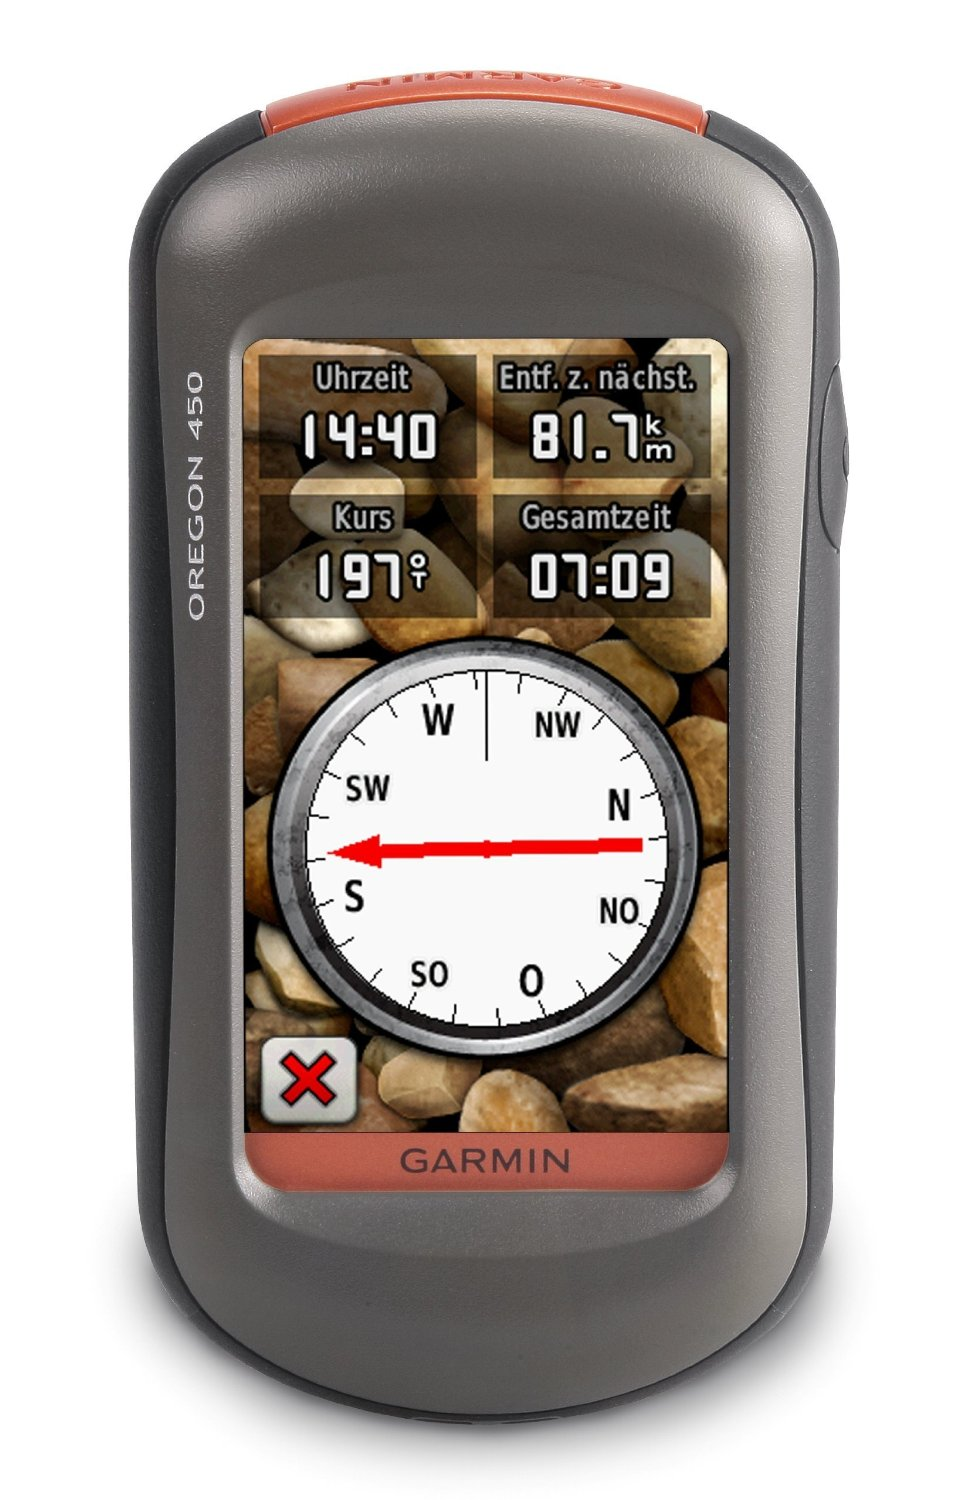 garmin oregon 450 im test garmin fahrrad navigation. Black Bedroom Furniture Sets. Home Design Ideas